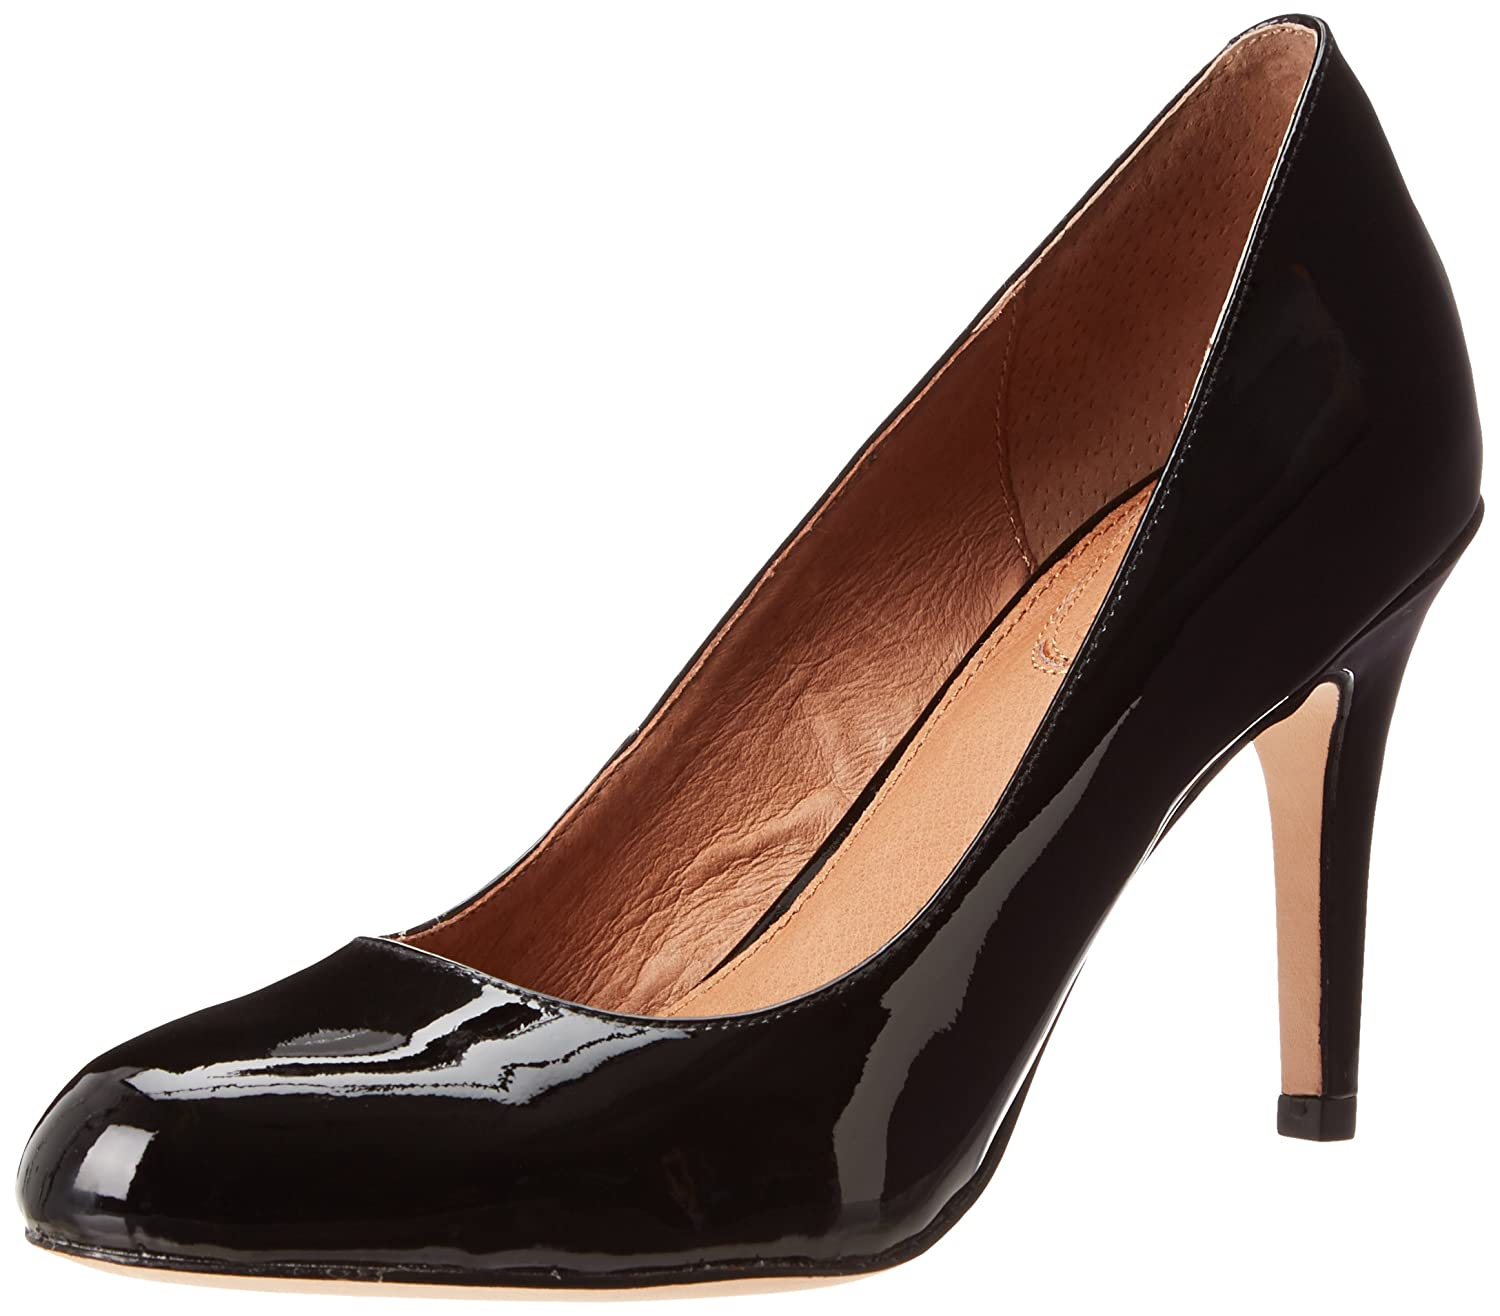 pointy blogger workwear in every memorandum fashion of high girl flint toe heels perfect heel classic black comforter needs arch sarah wearing mary most the orton pumps support comfortable low mid padding working